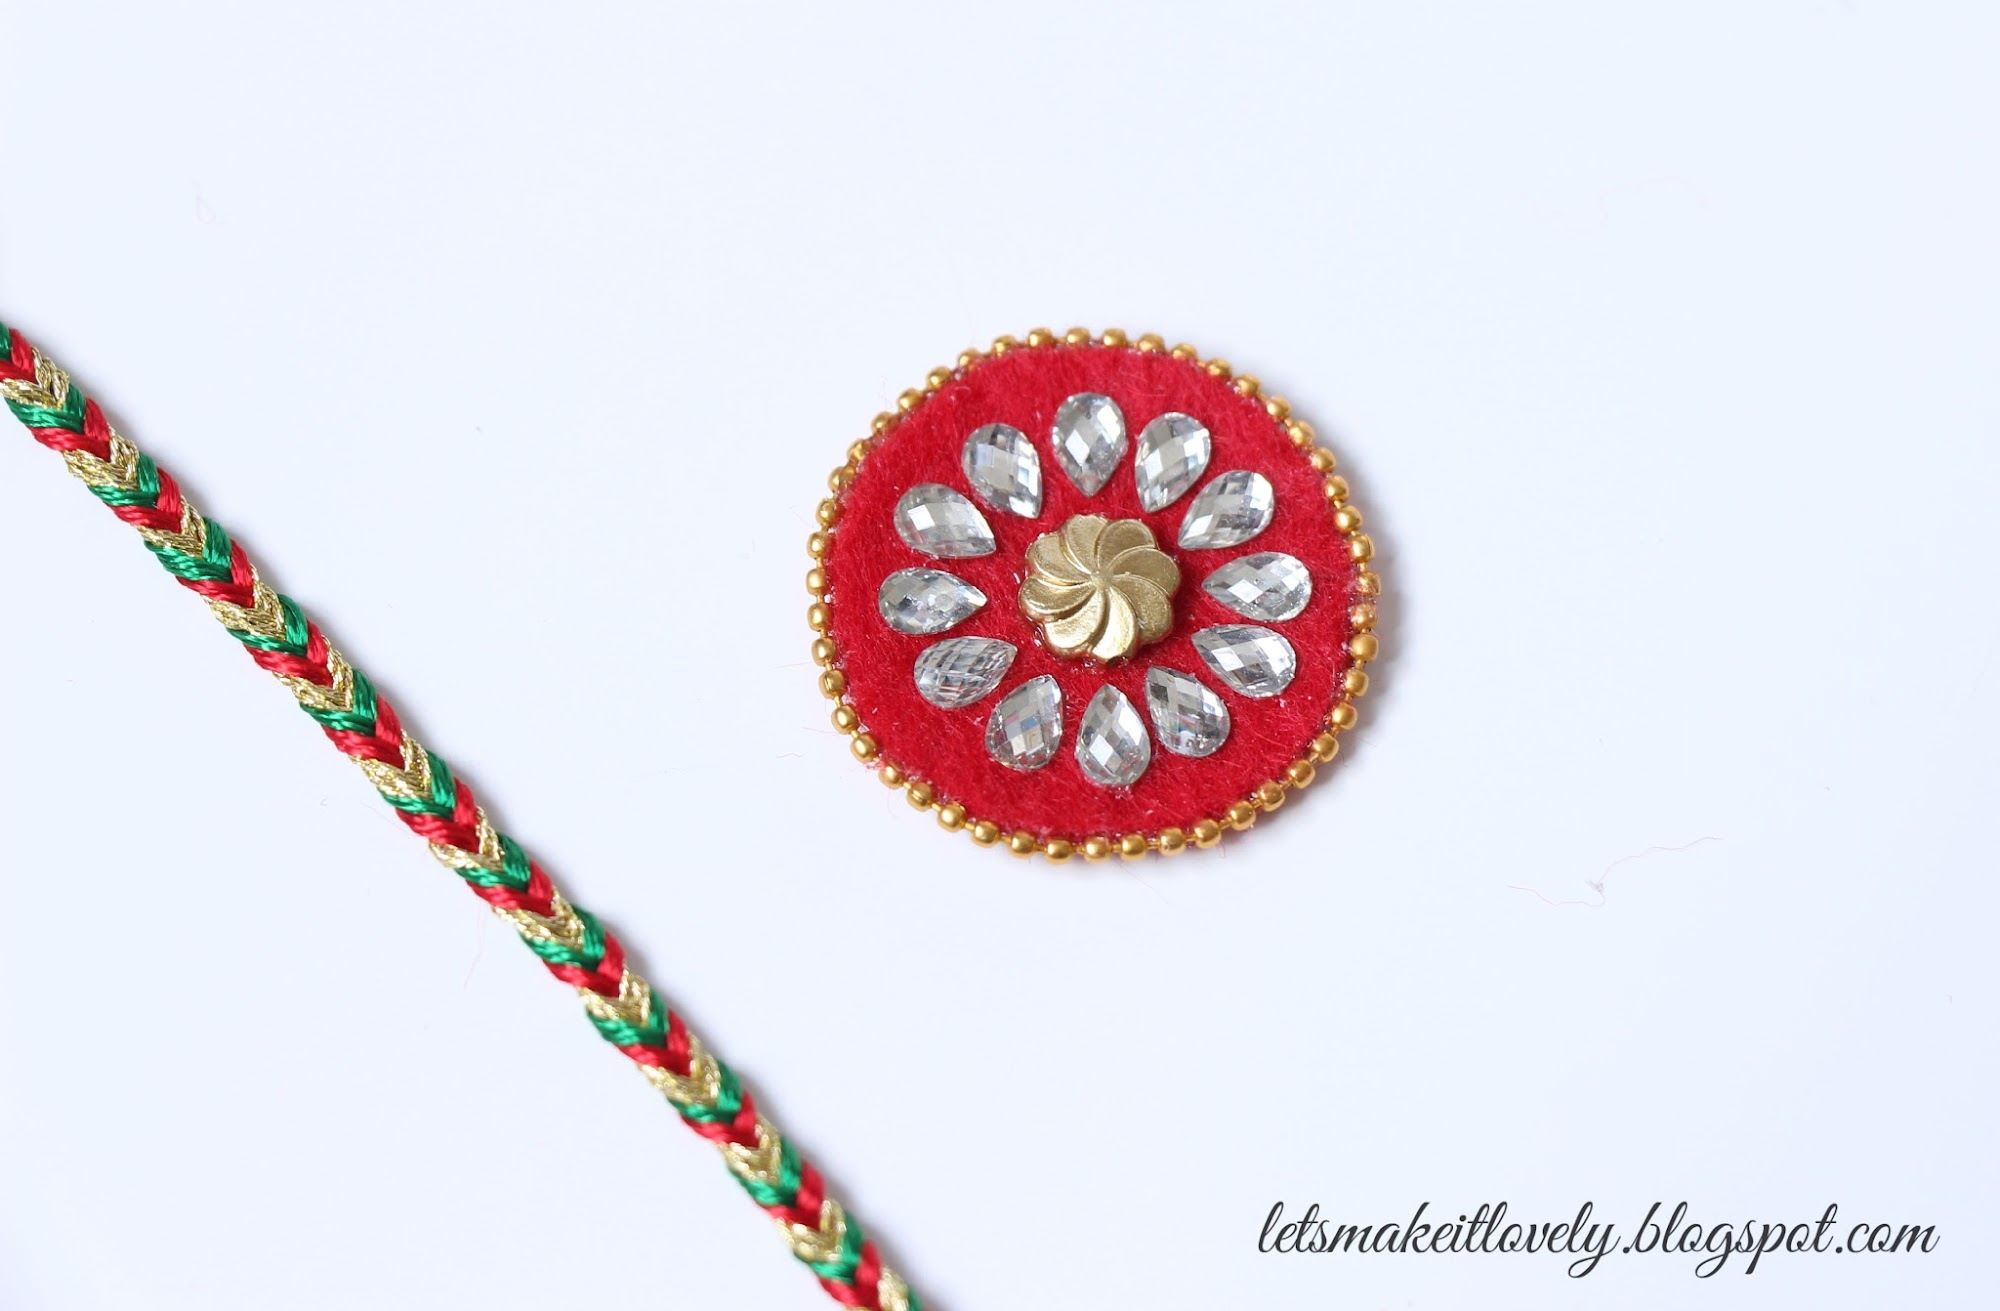 Make a Rakhi for Raksha Bandhan. Gift for brother.